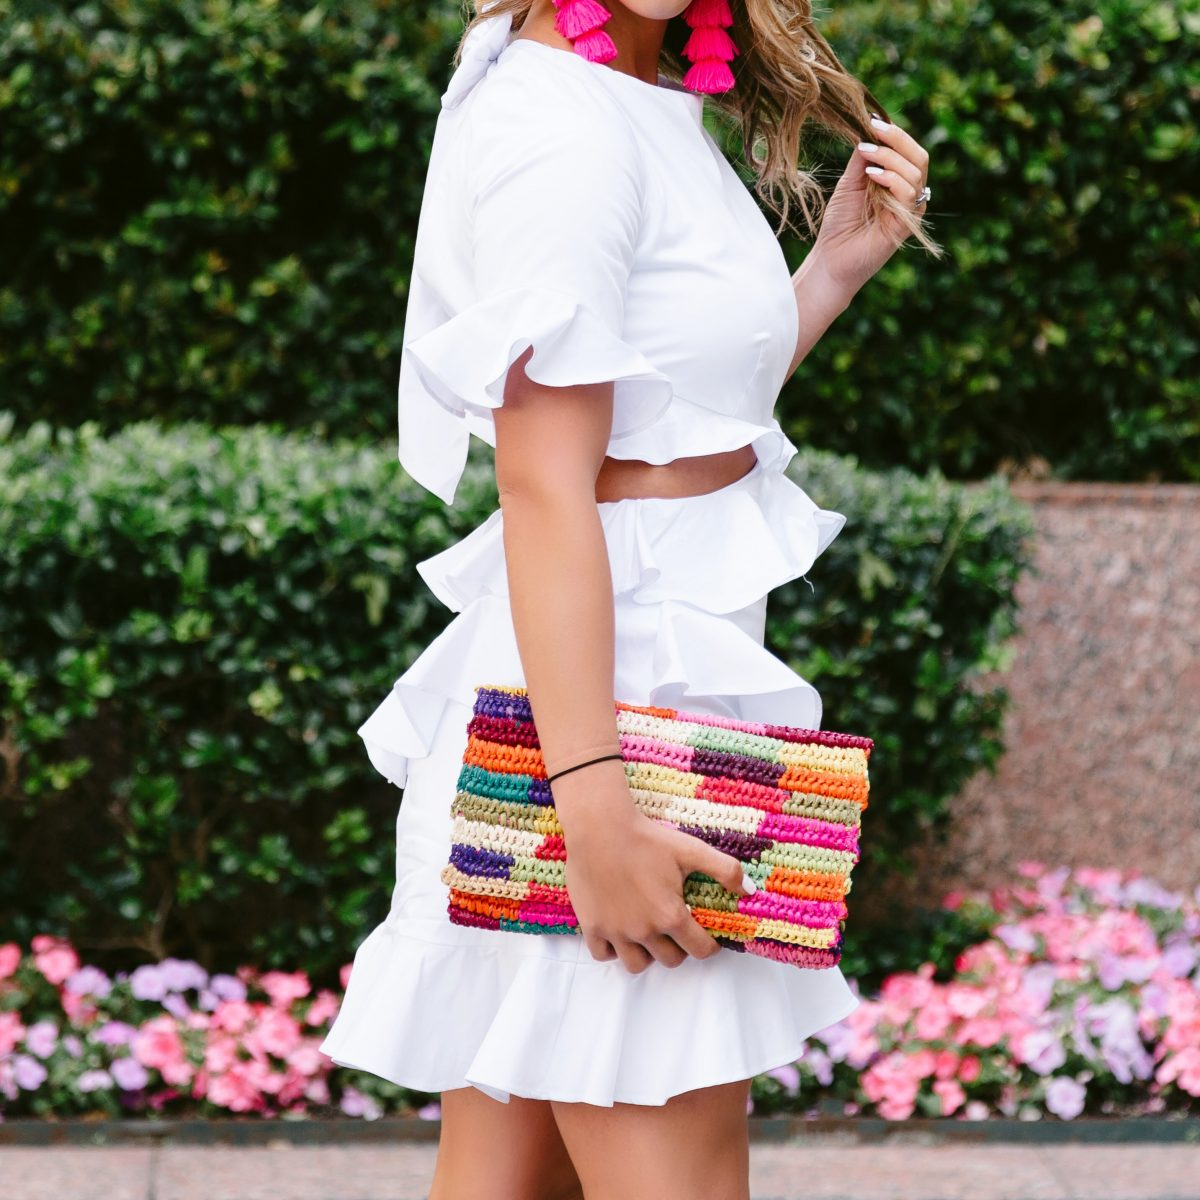 rsthecon rewardstyle blogger conference what i learned at rsthecon white ruffle dress white dress ruffled dress pink tassel earrings colorful clutch fashion blogger fashion blogger conference frilly ruffled dress white ruffles